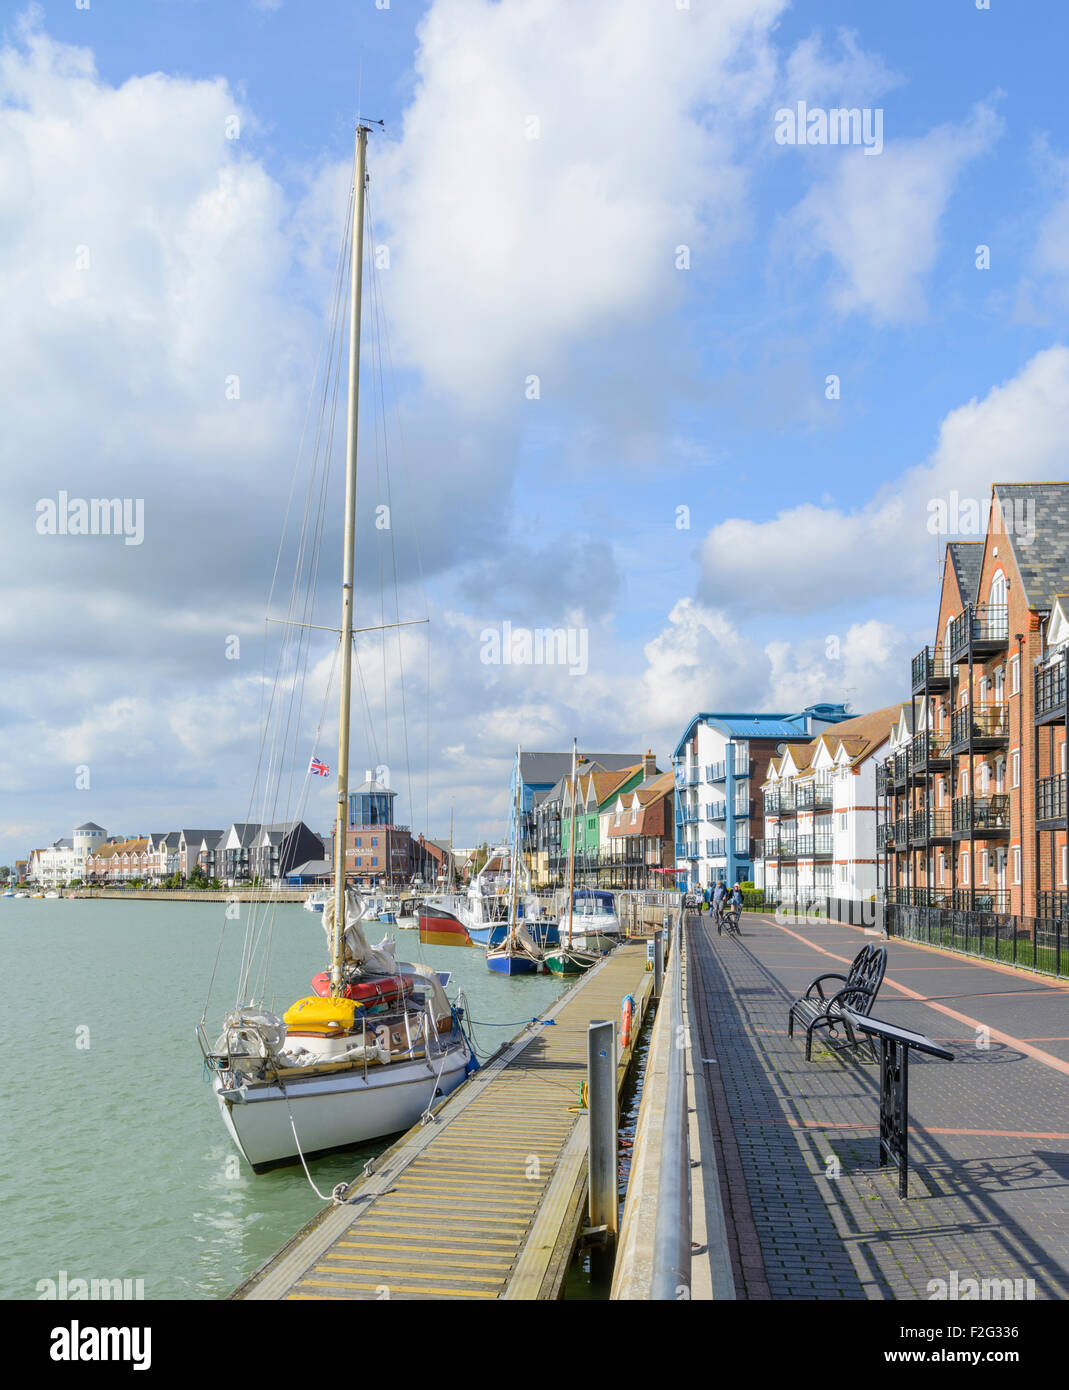 Riverside housing and towpath along the River Arun, Littlehampton, West Sussex, England, UK. Stock Photo